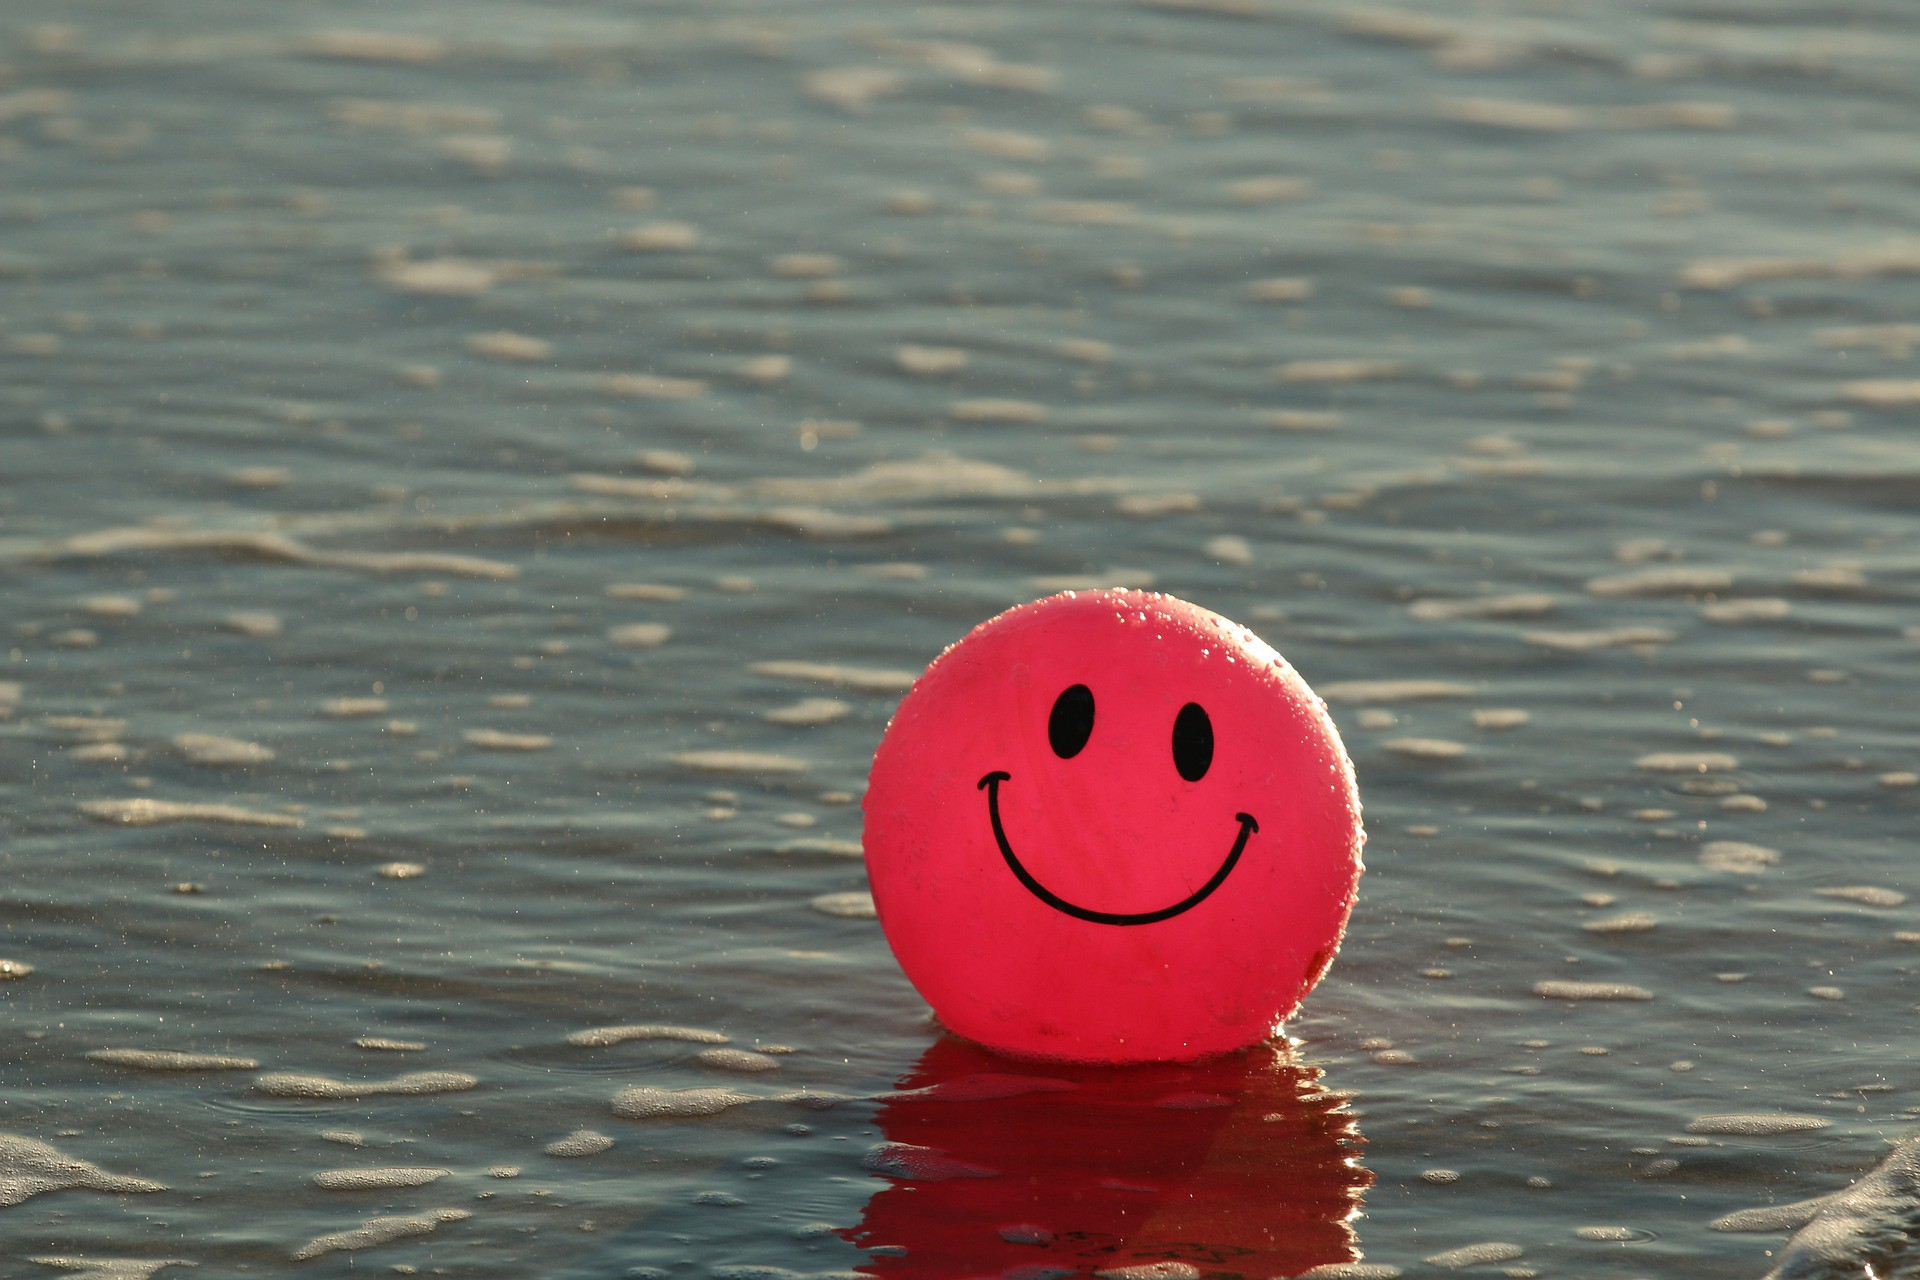 Baloon with a smiley face, floating on water